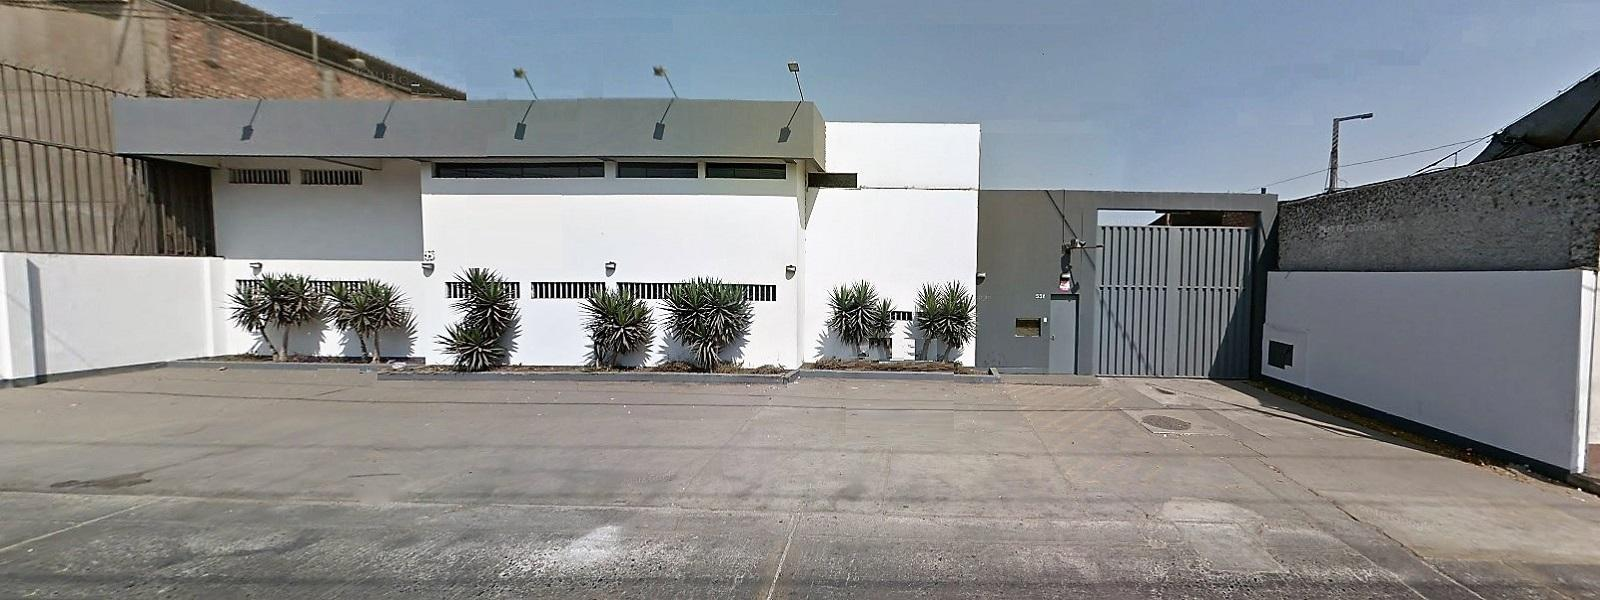 SE VENDE LOCAL INDUSTRIAL EN SANTA ANITA